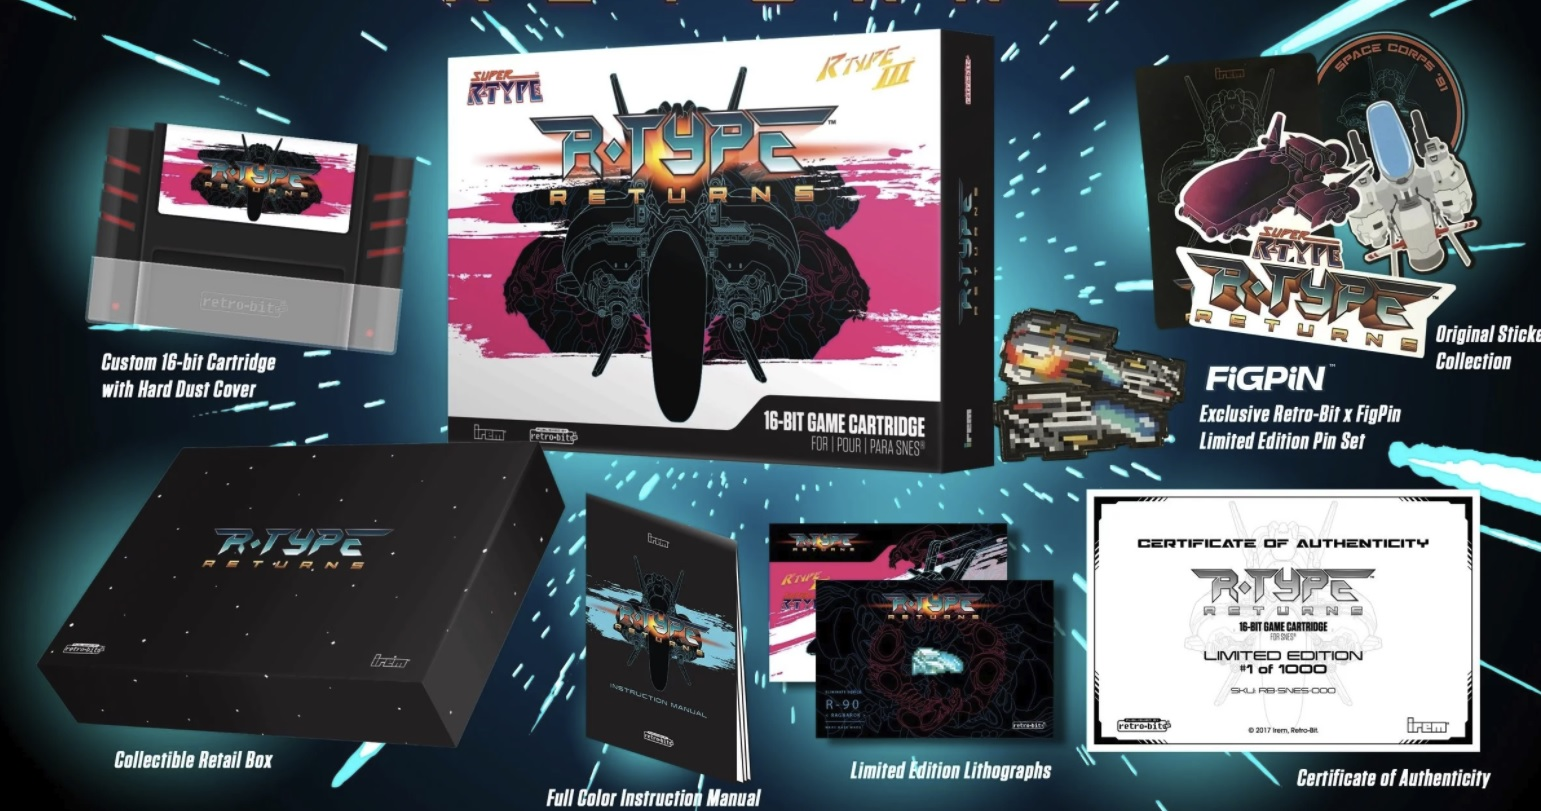 Super R-Type is back with an SNES reprint from Retro-bit screenshot